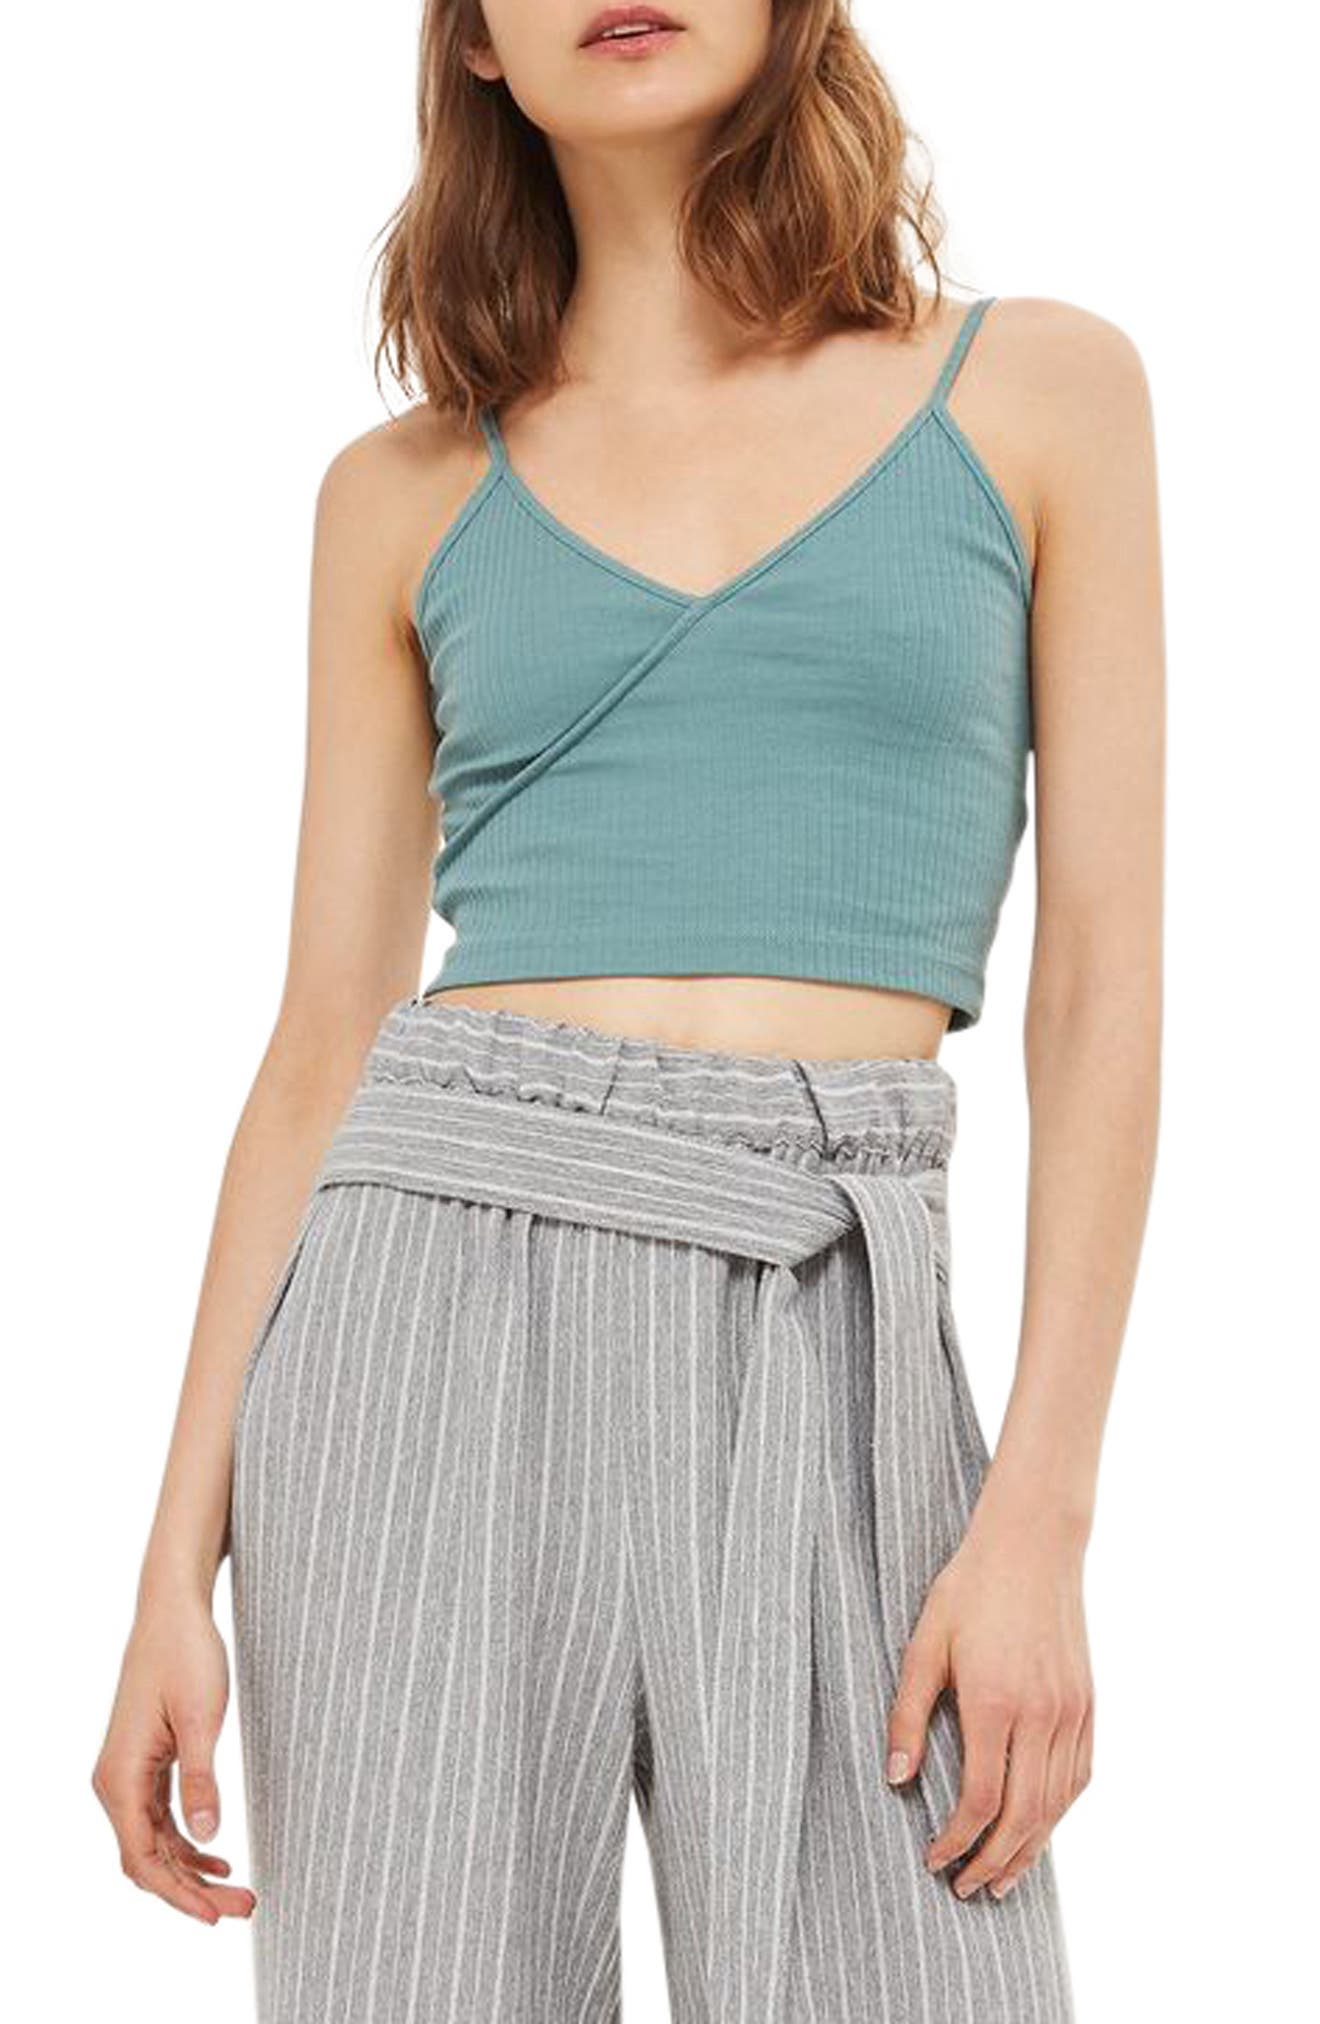 Topshop Kaia Crop Top (Regular & Petite)(2 for $18)